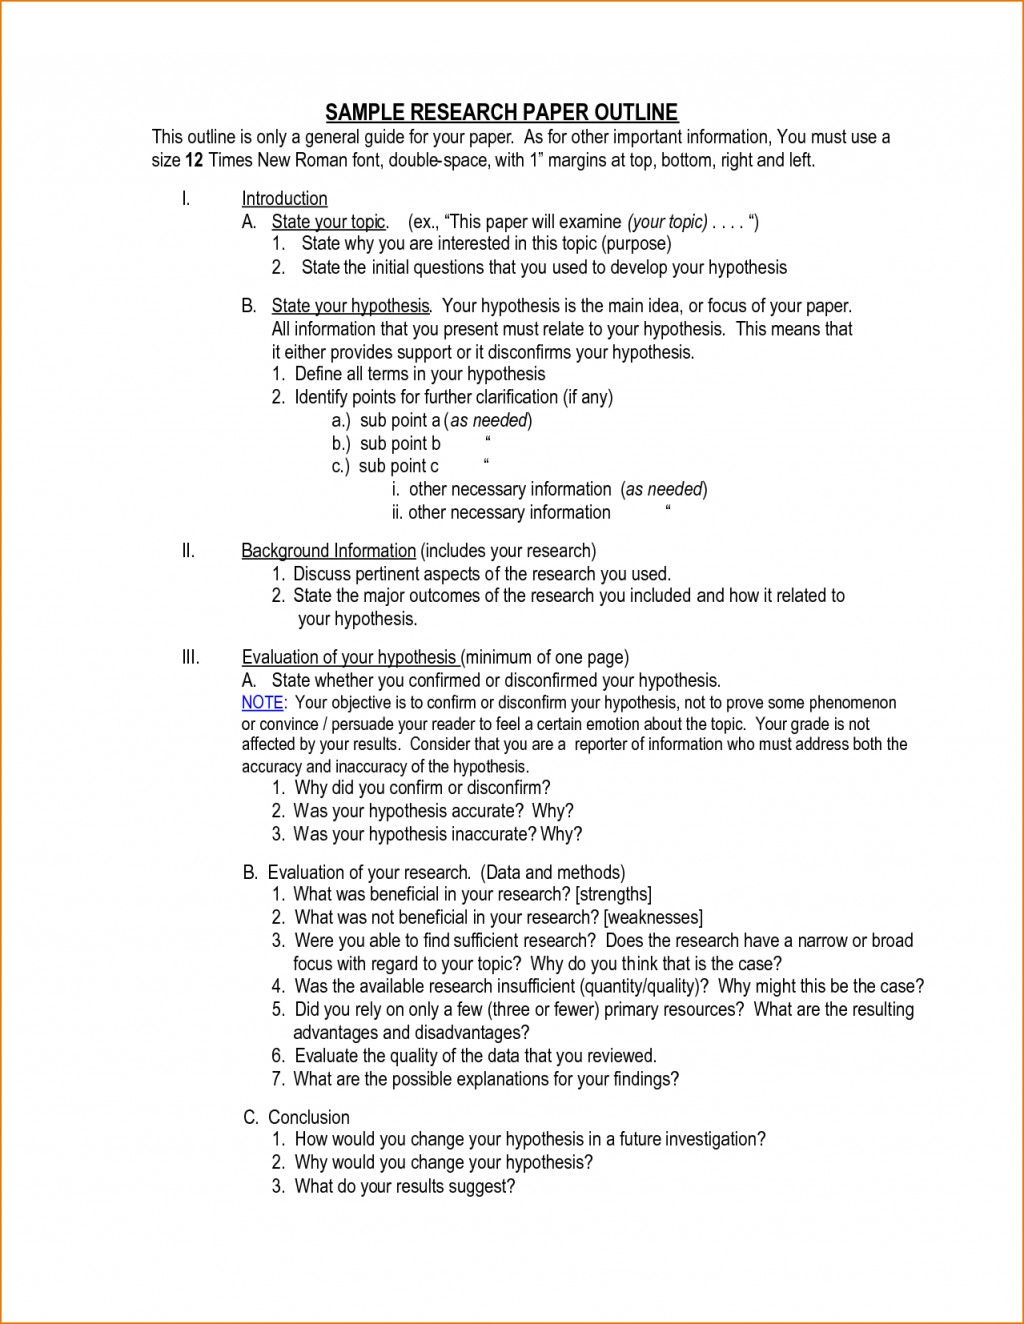 012 Research Paper Outline Template For Outlines Top A On Bullying Sample Apa Format Large